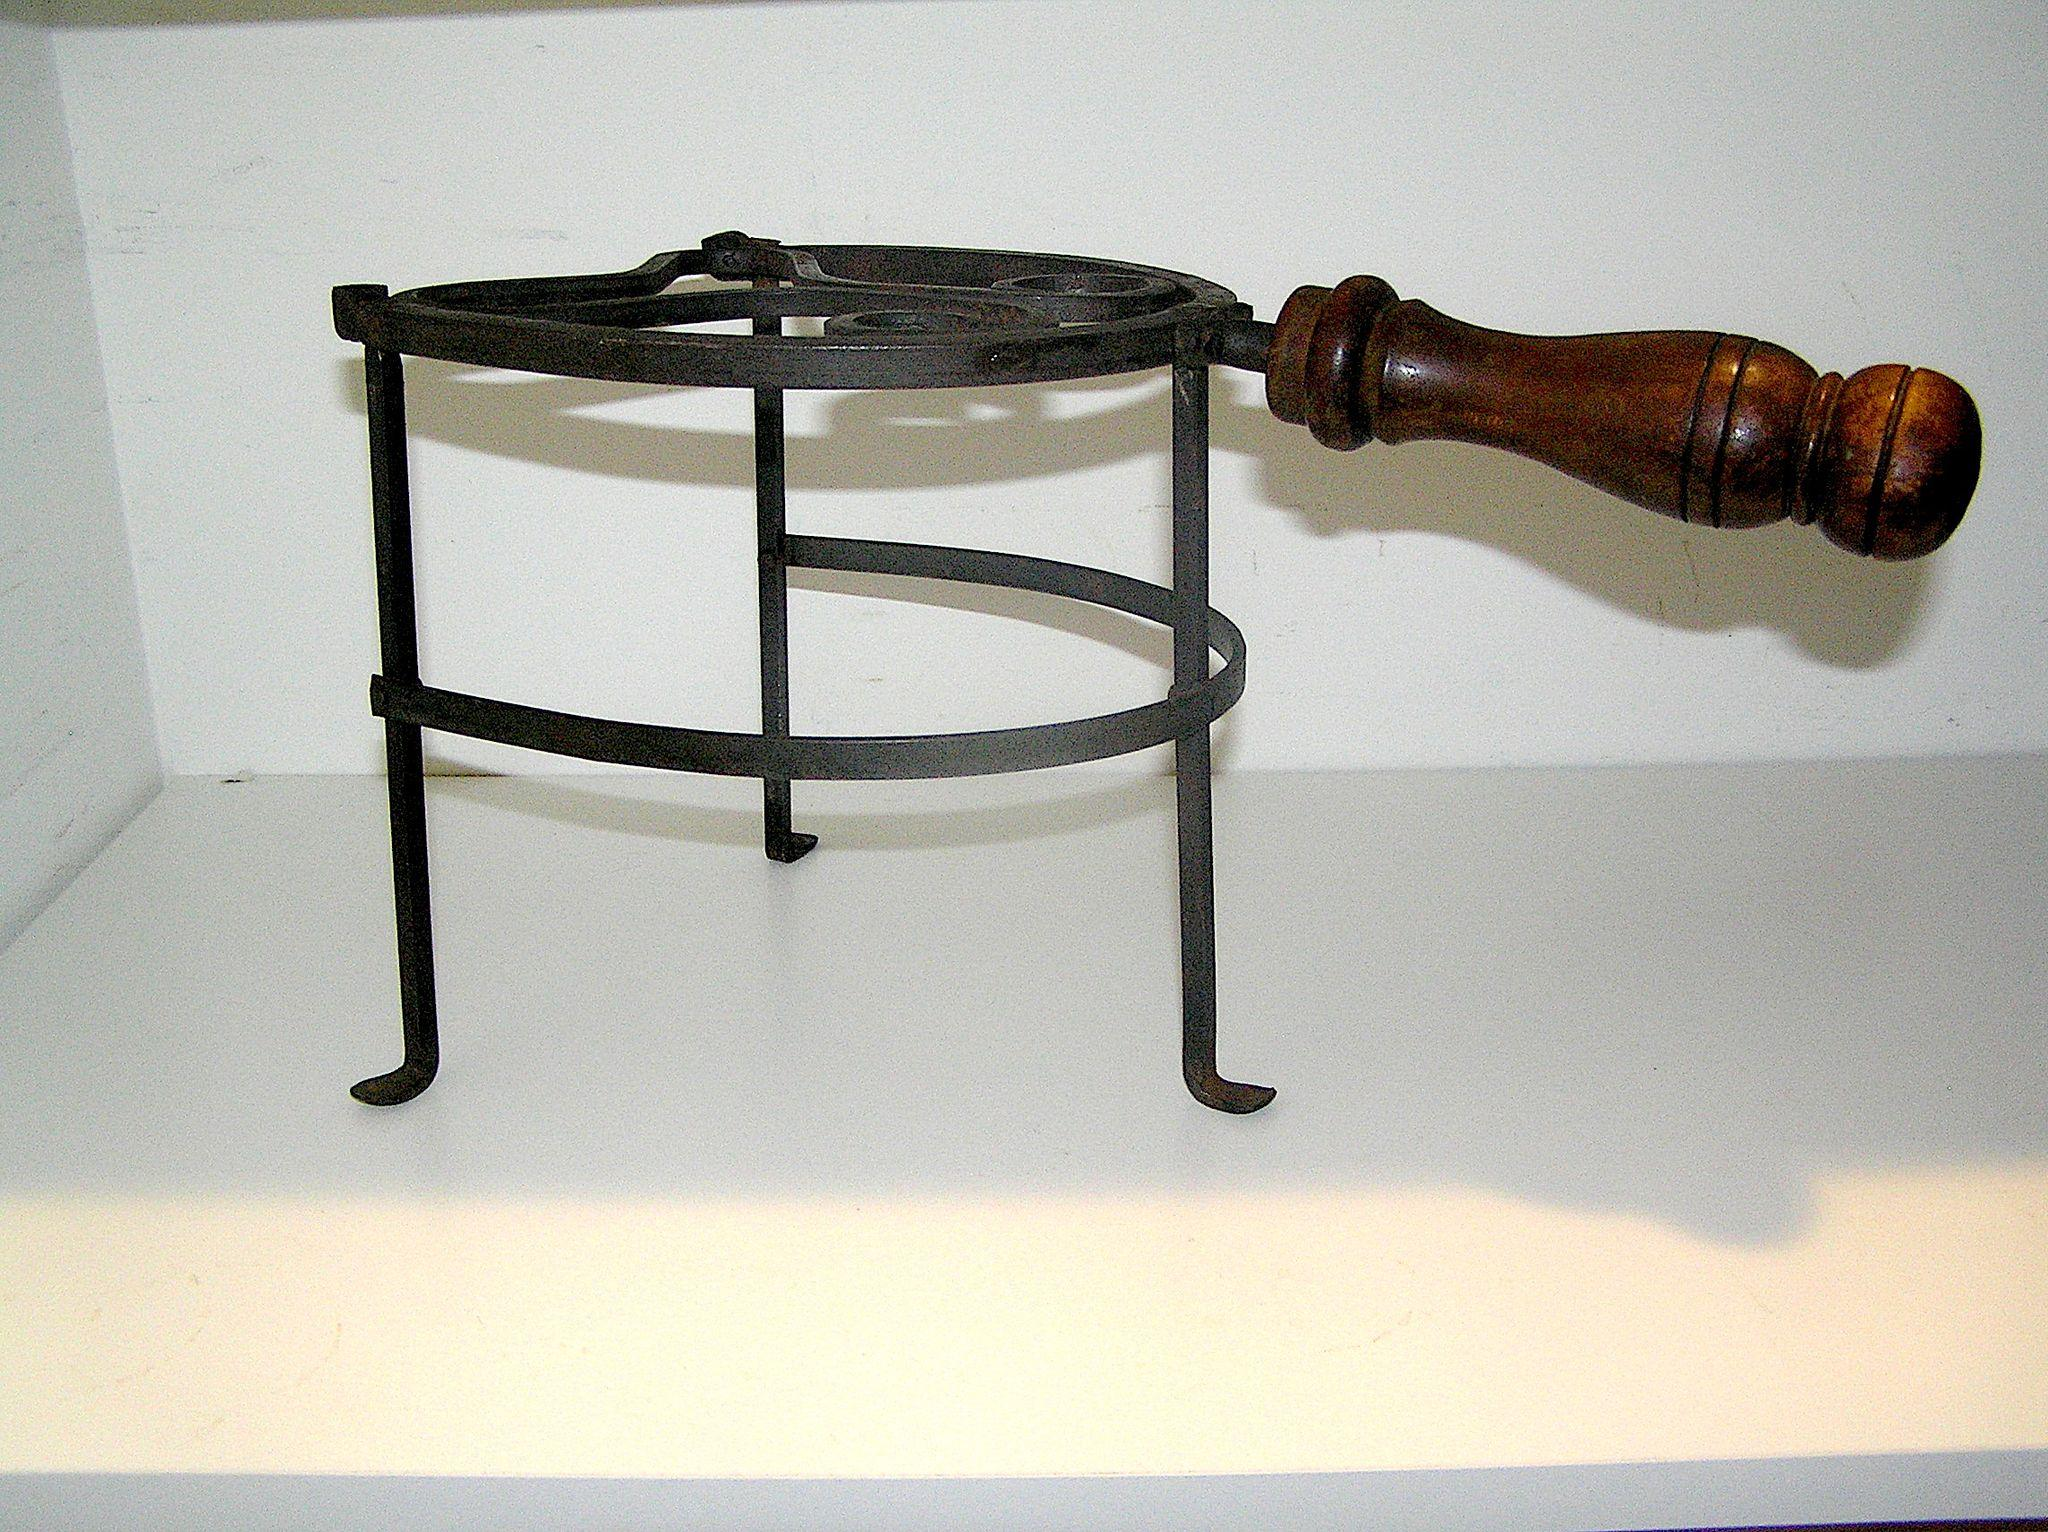 antique wrought iron fireplace kettle or pot stand with heart